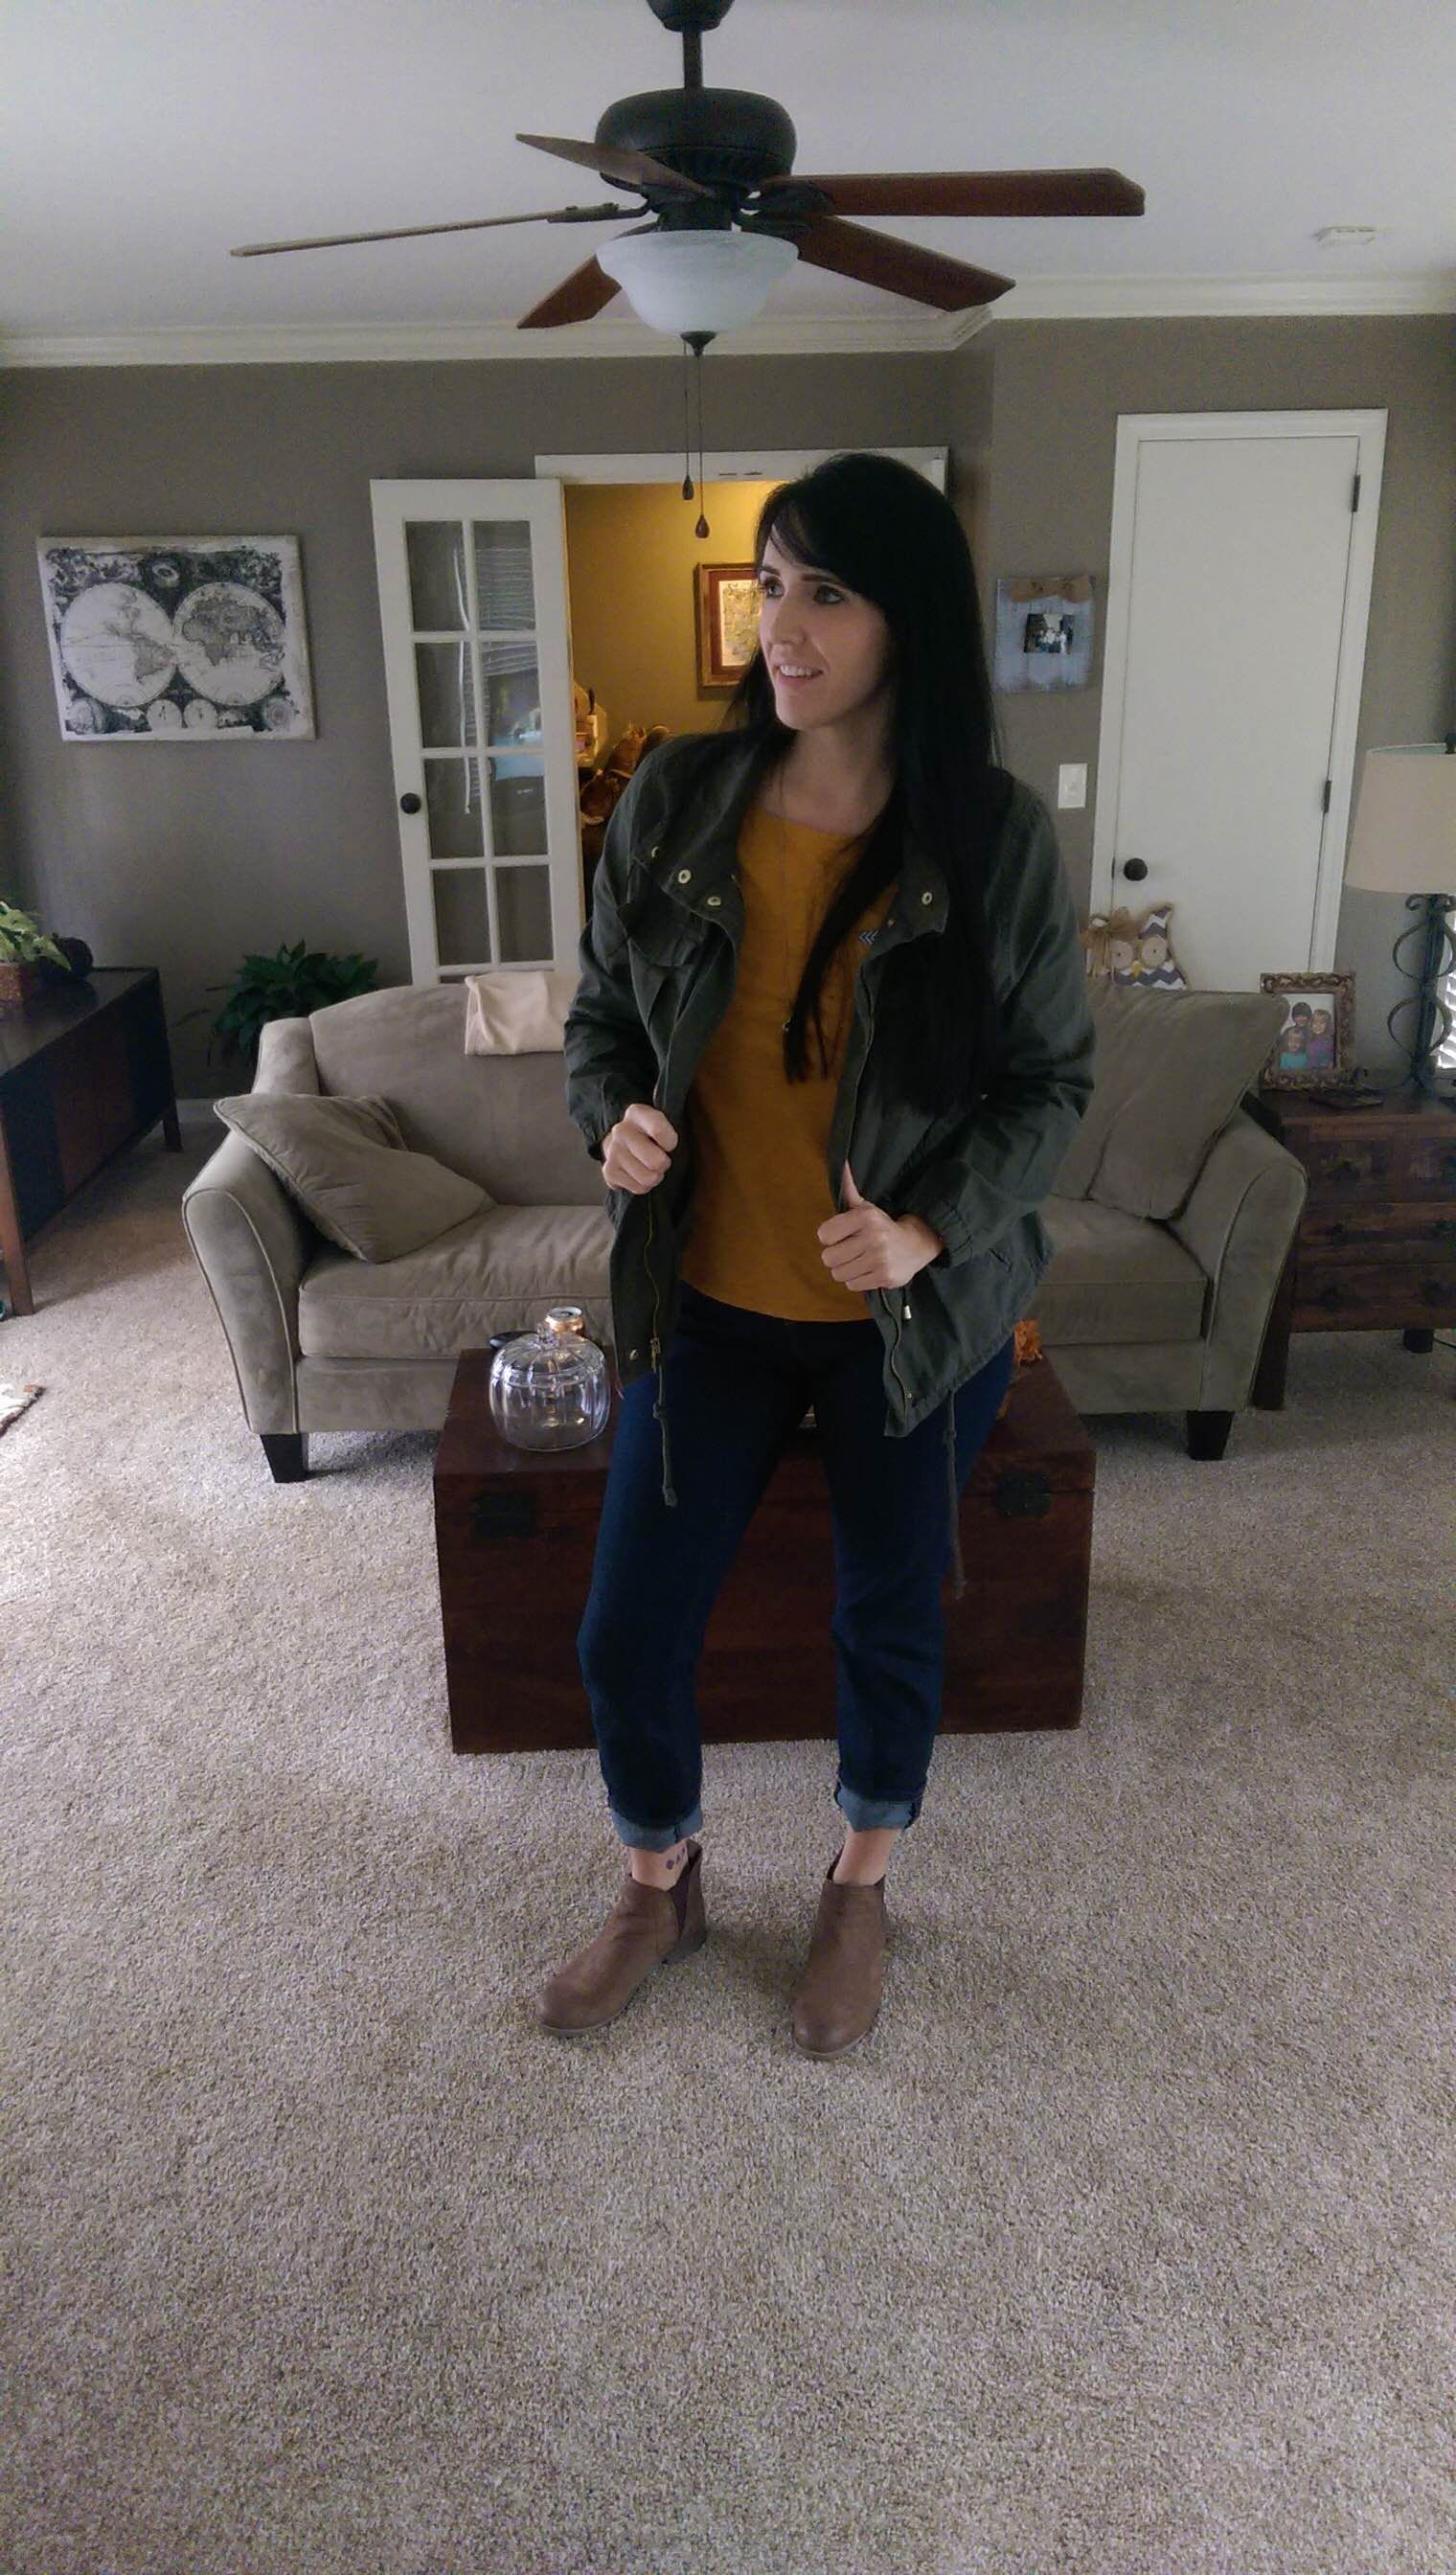 Mustard top from Anthro, forest green utility jacket from Old Navy - paired with cuffed jeans and brown Steve Madden booties.